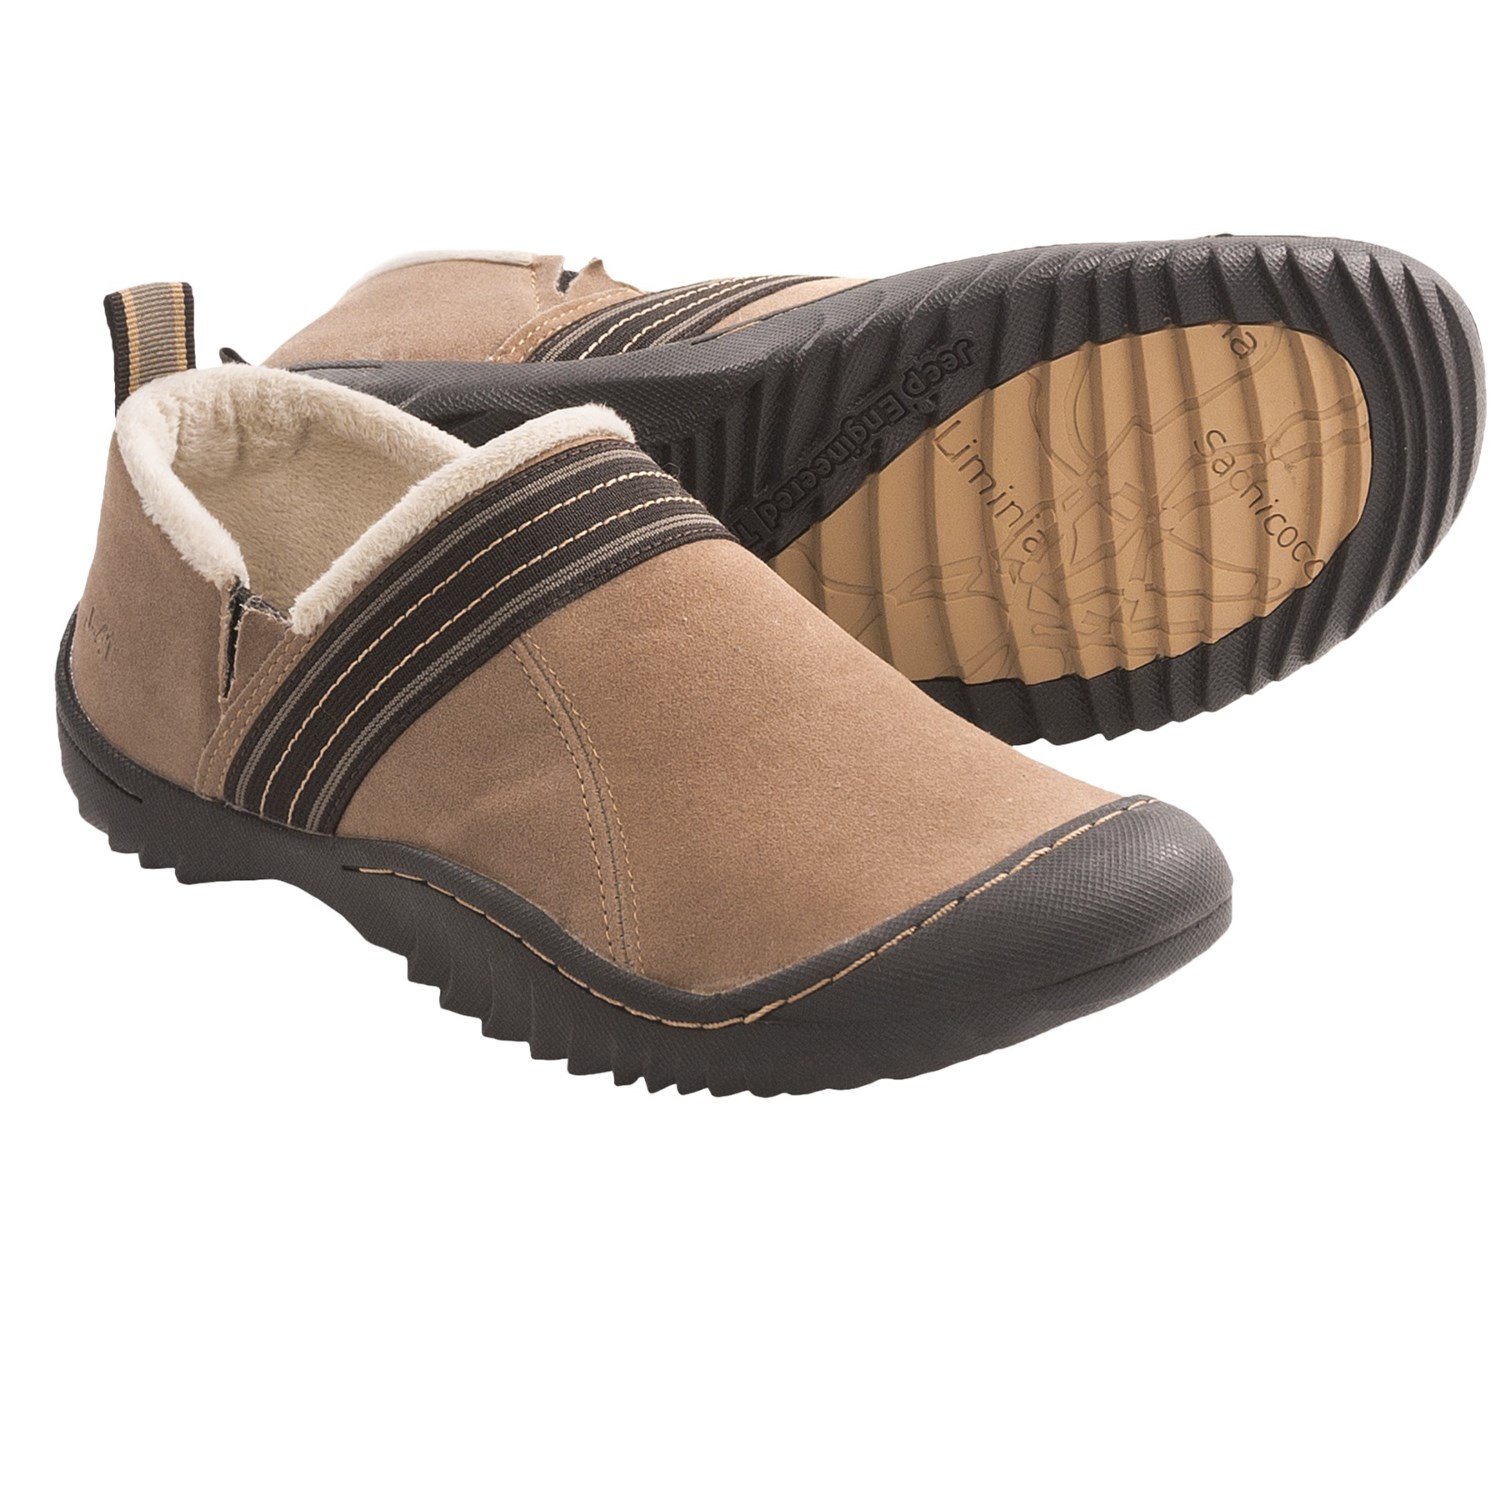 Zappos is a GREAT place to get started with that. I am madly in LOVE with my comfy Jeep J-41TM Aquarius-Vegan (brown+pink) shoes. Cushy. Cute. Comfortable